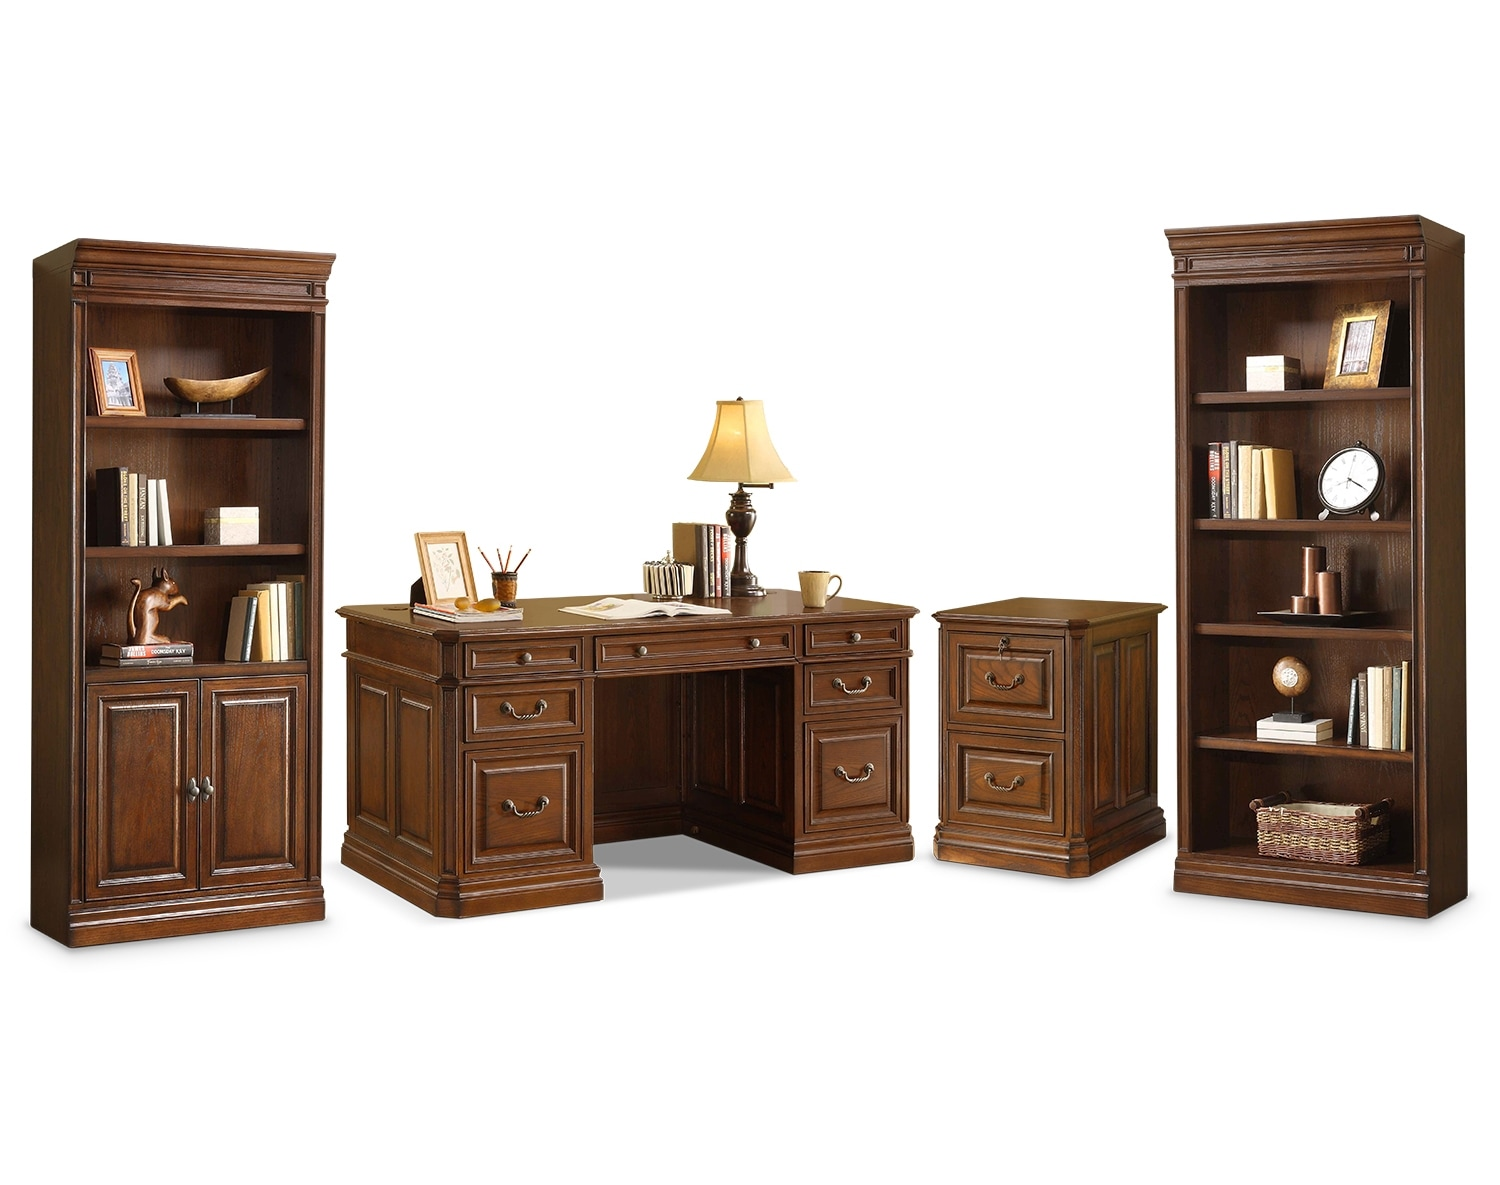 The Johanne Collection - Chocolate Oak